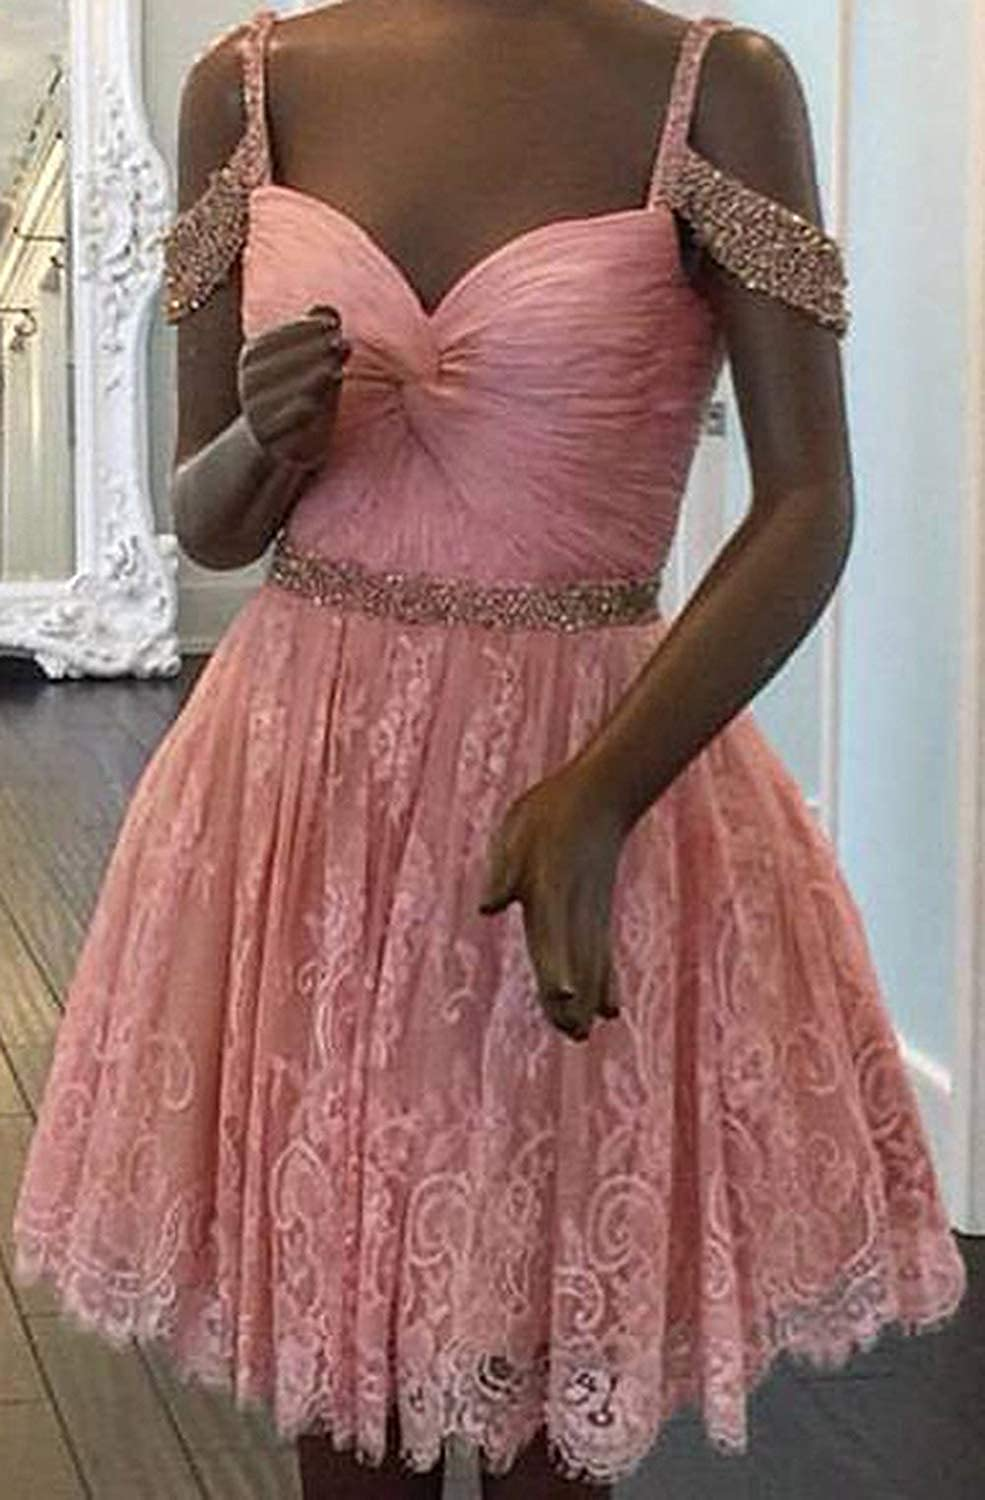 23b8d8e34 Amazon.com: HanlandyBridal Off The Shoulder Short Prom Homecoming Dresses  Lace Beaded Formal Ball Gowns: Clothing